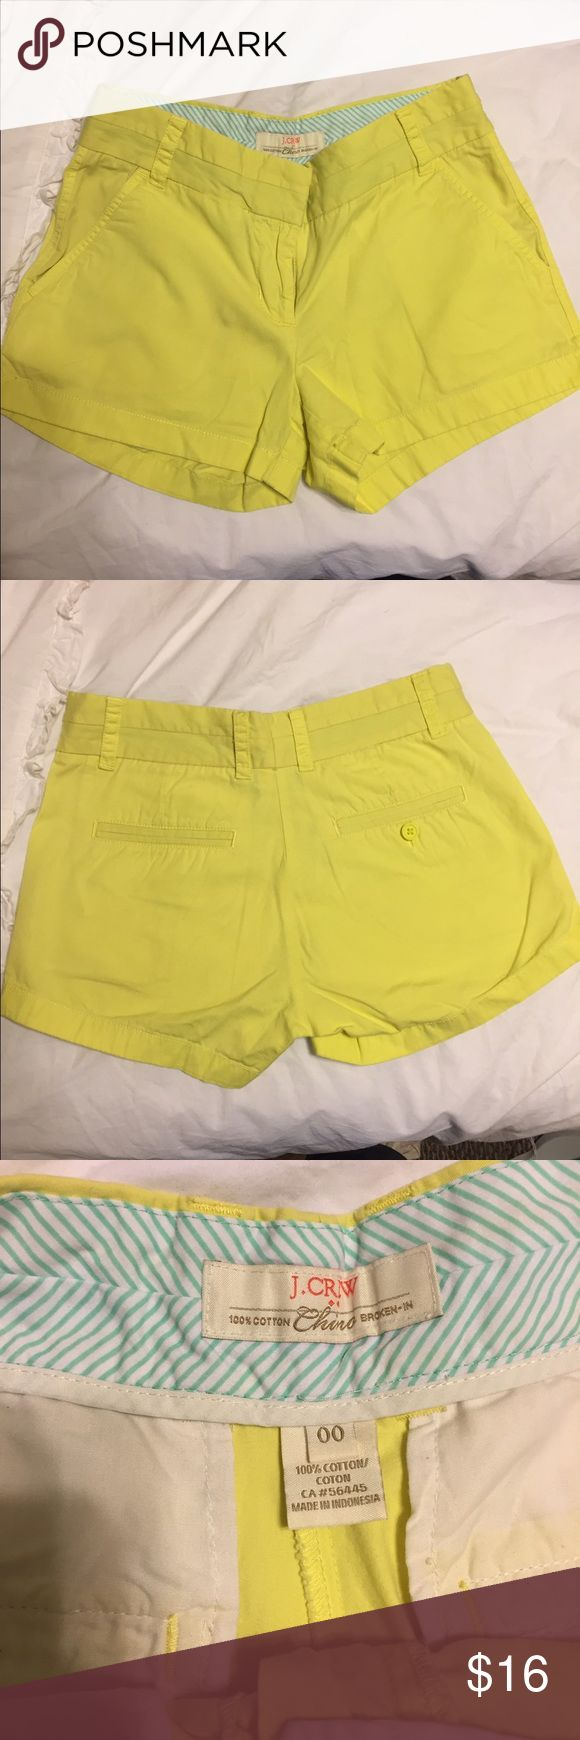 Yellow/lime green J.crew broken in chinos Yellow/lime green J.crew broken in chinos, 3 inch inseam. Size 00. Like new condition, all buttons present, no stains, no tears. Pictures show the color really well J. Crew Shorts